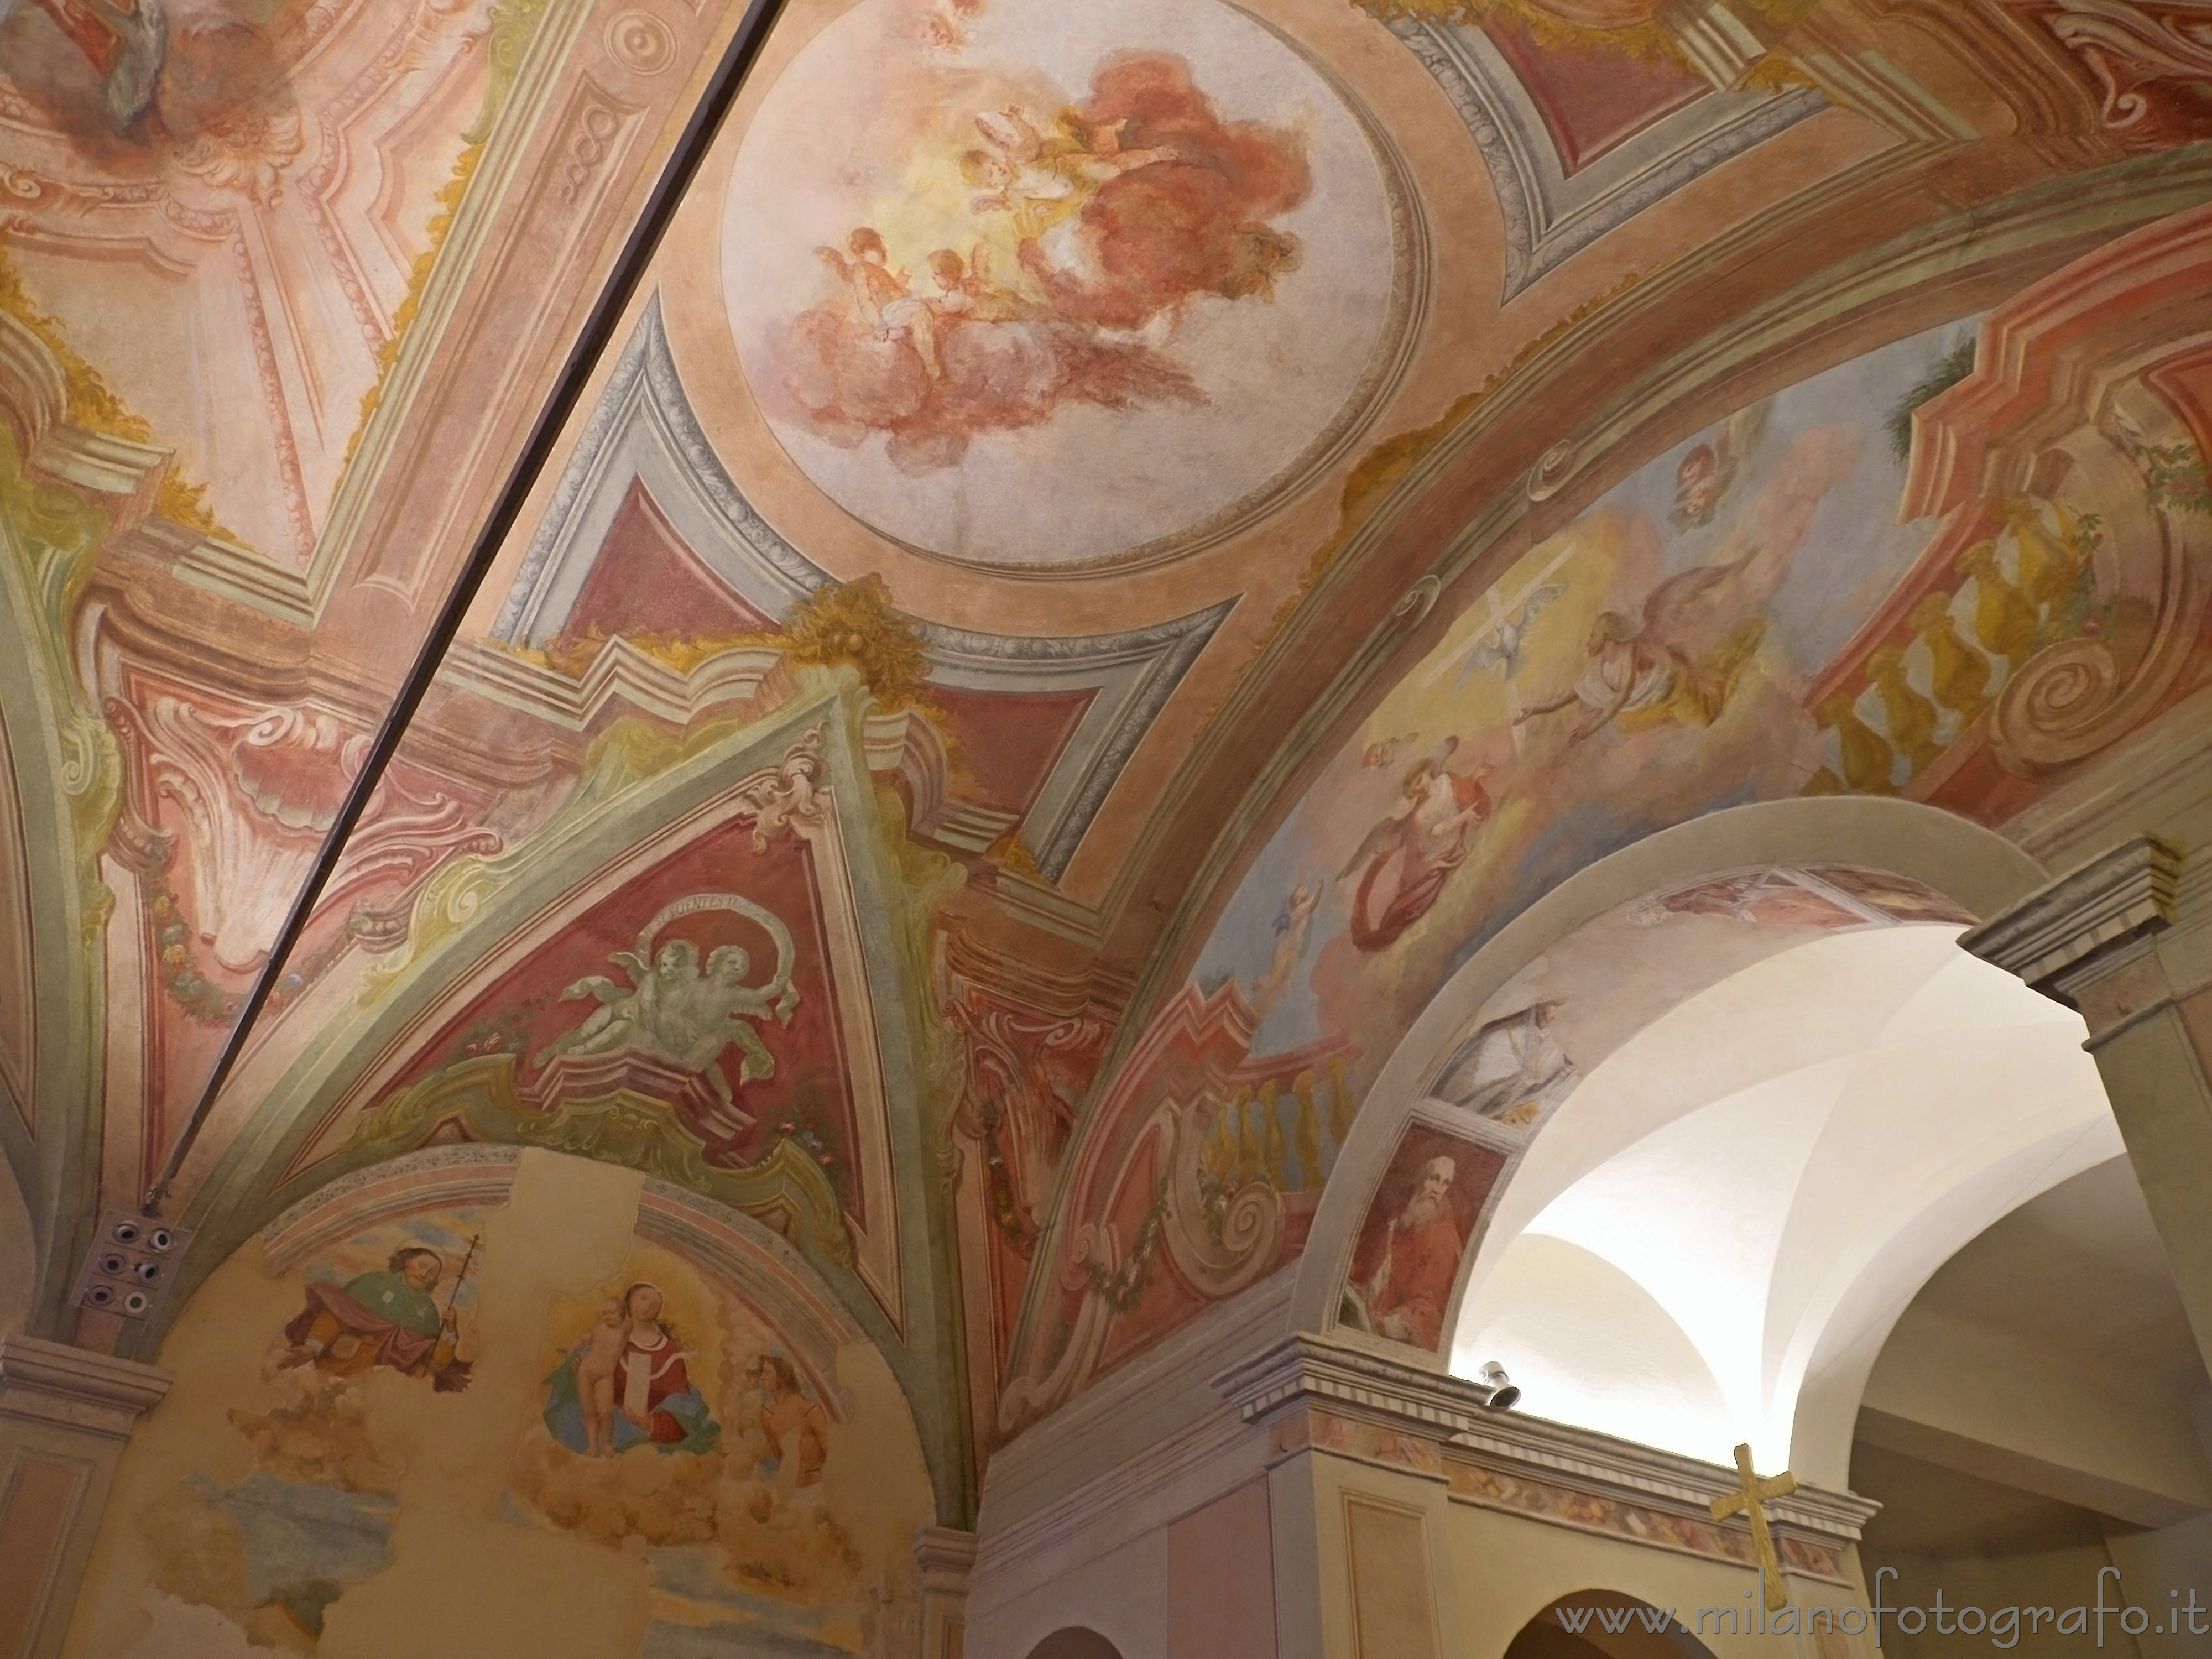 Milan (Italy): Ceiling of the Ortica Sanctuary decorated with frescos - Milan (Italy)